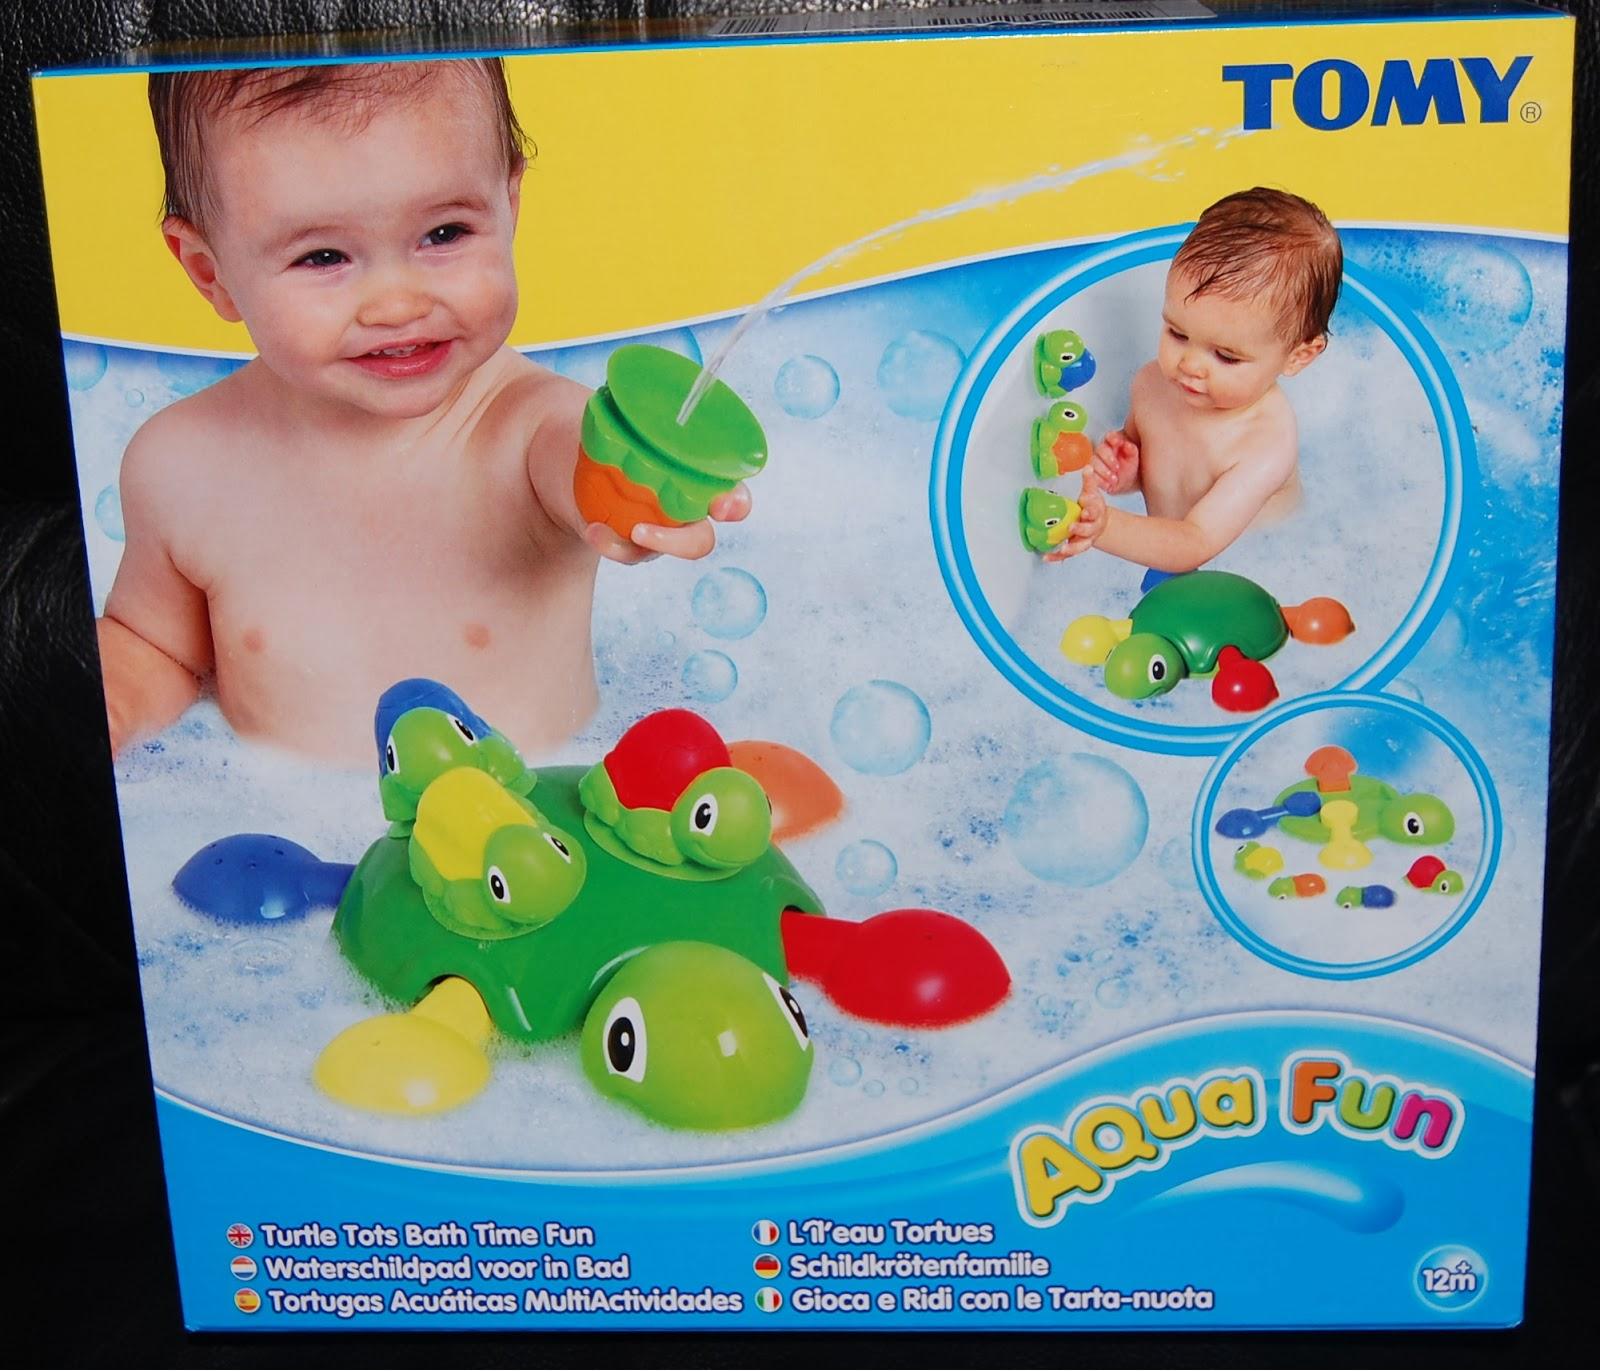 Bath Time Means Fun Time With Tomy Aqua Fun Toys - My Three and Me